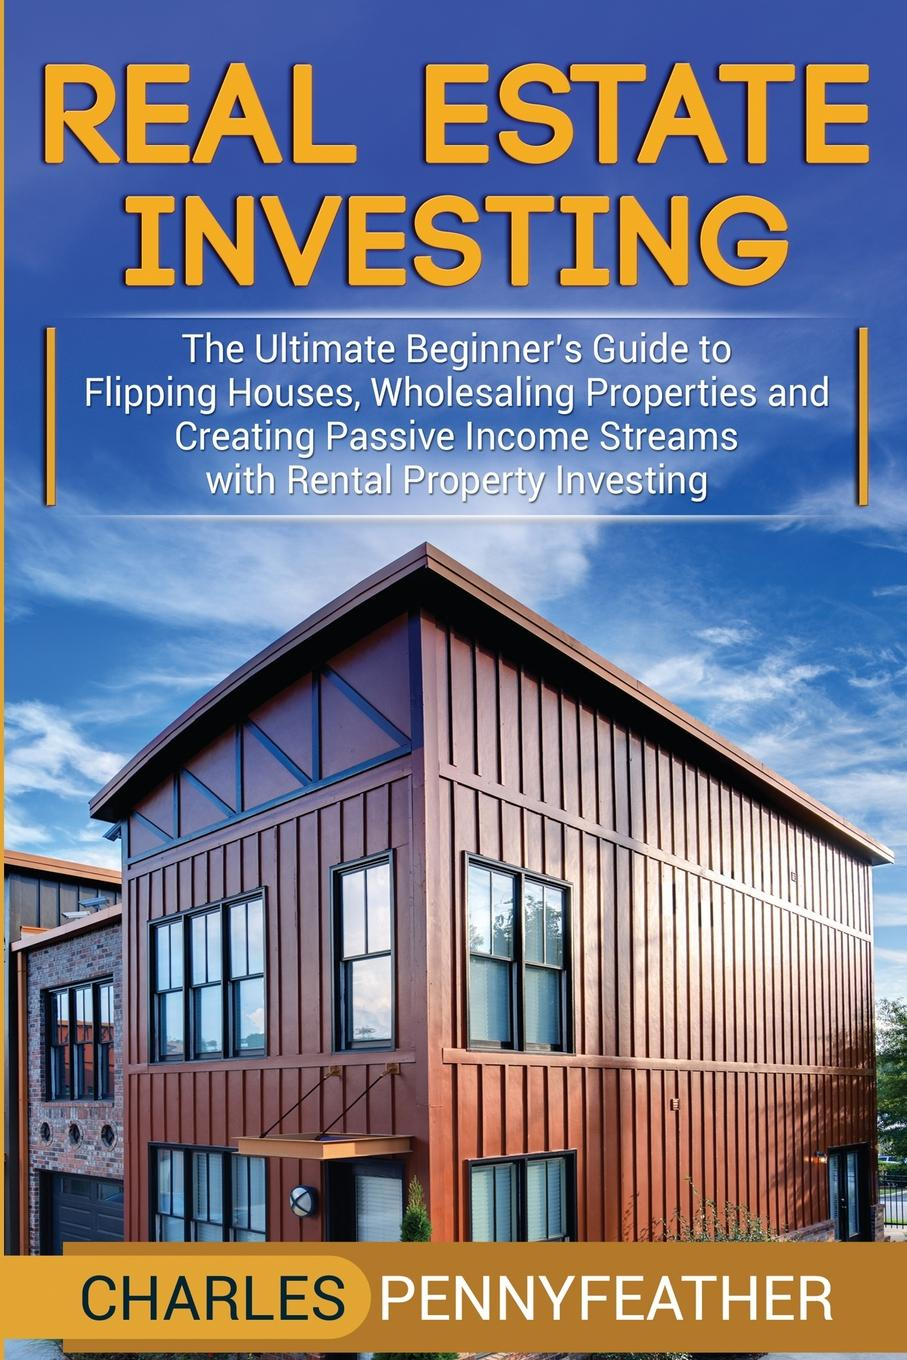 Фото - Charles Pennyfeather Real Estate Investing. The Ultimate Beginner's Guide to Flipping Houses, Wholesaling Properties and Creating Passive Income Streams with Rental Property Investing wai yee chen neuroinvesting build a new investing brain